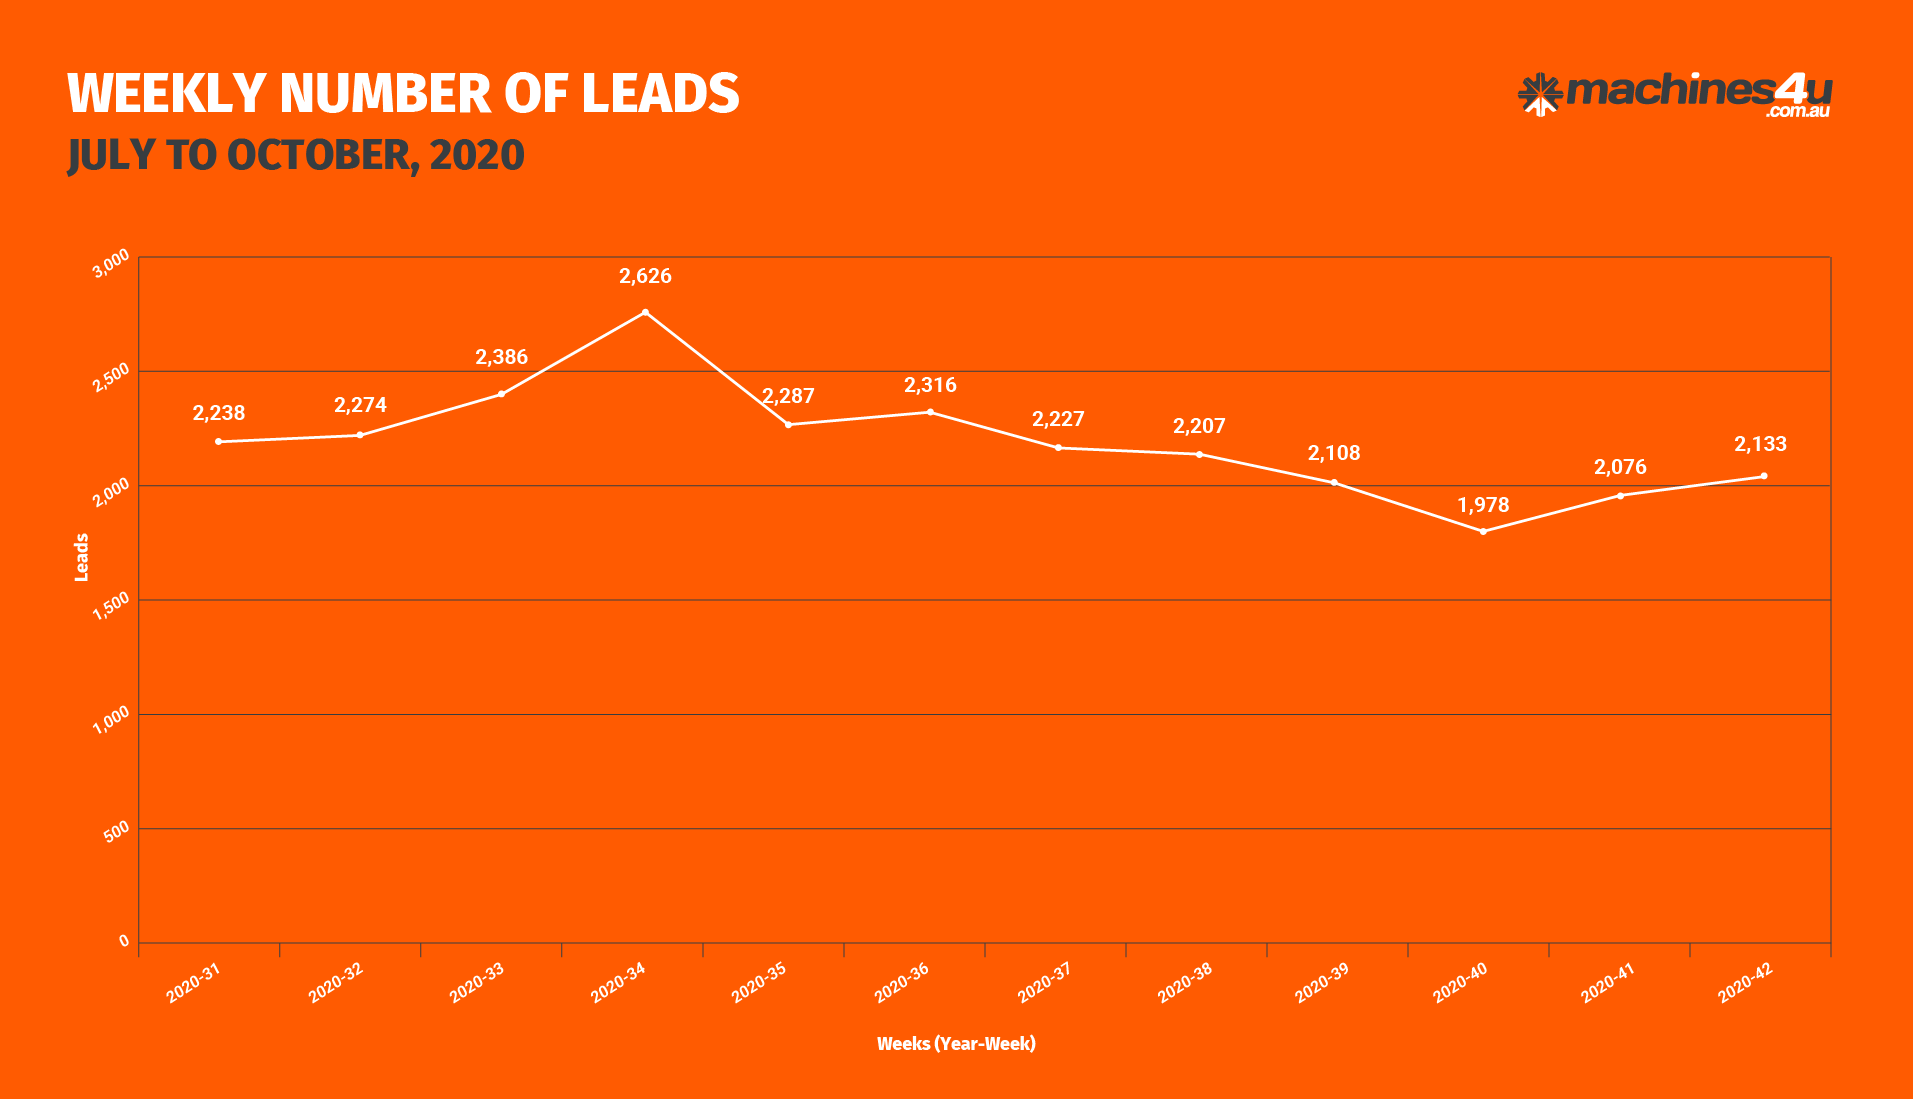 BOR Graphs_WEEKLY NUMBER OF LEADS_20th October, 2020-01